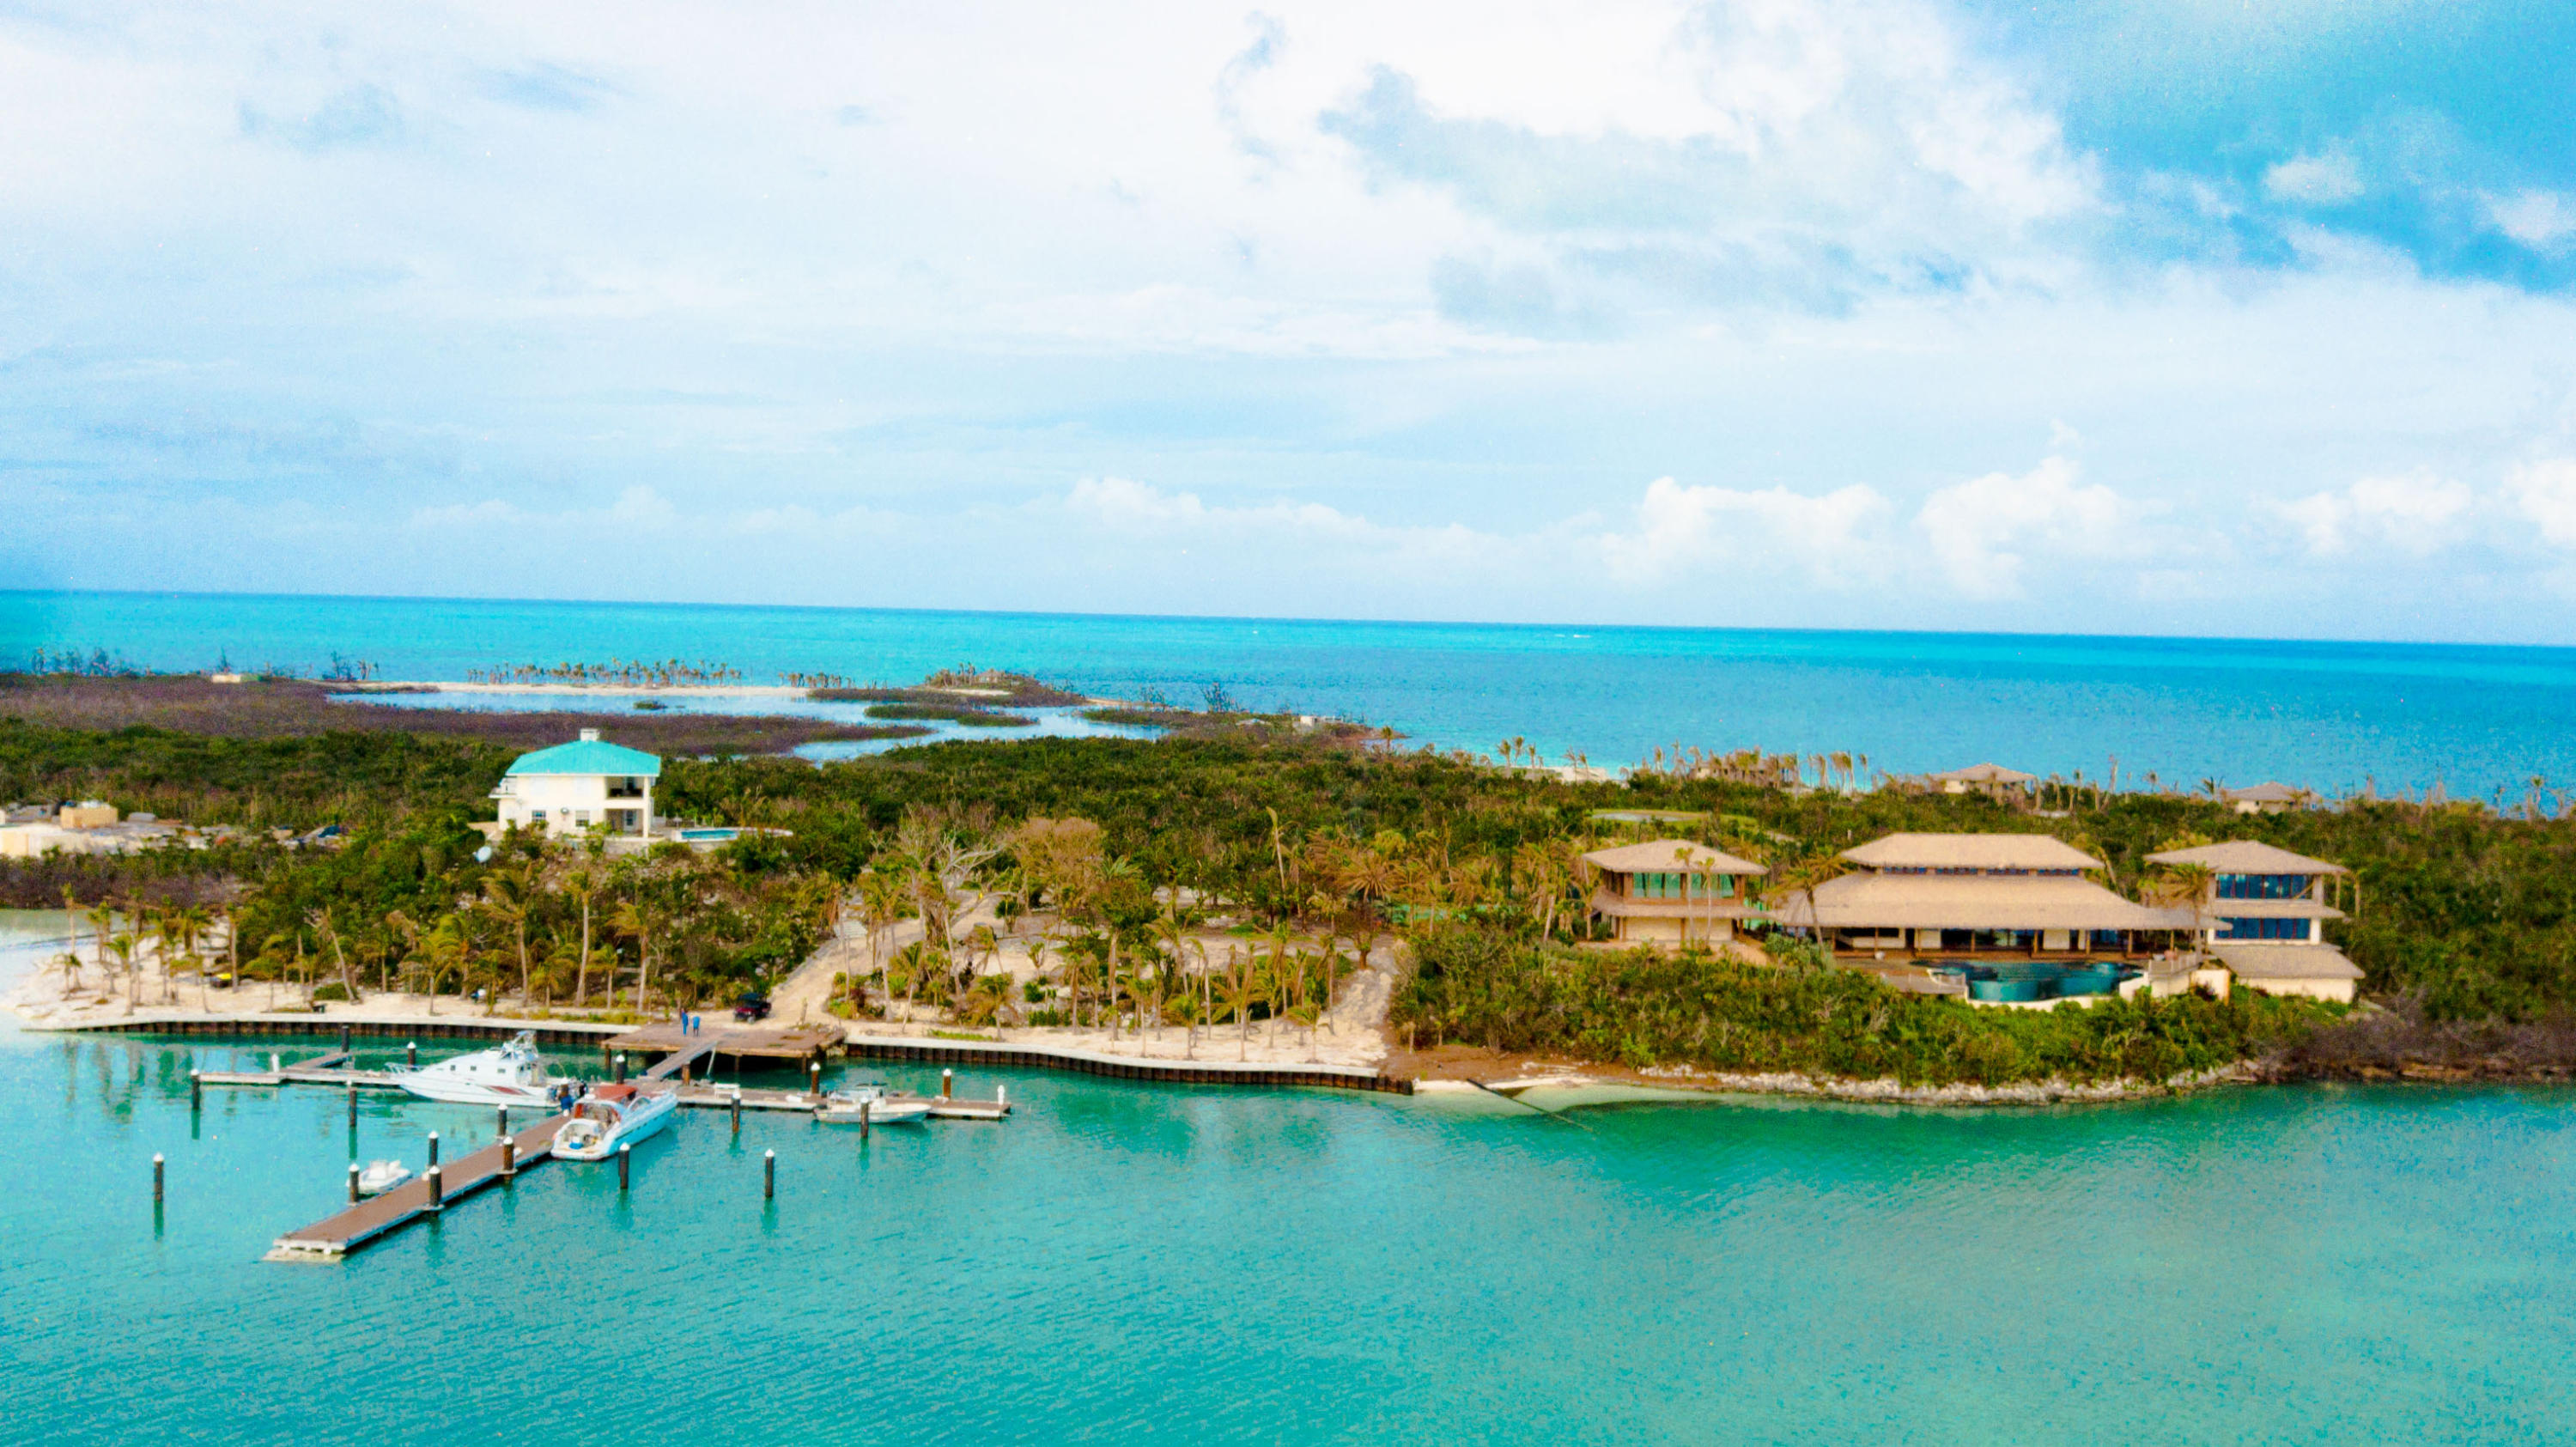 Photo of Big Grand Cay, Out of Country, Out of Country 00000